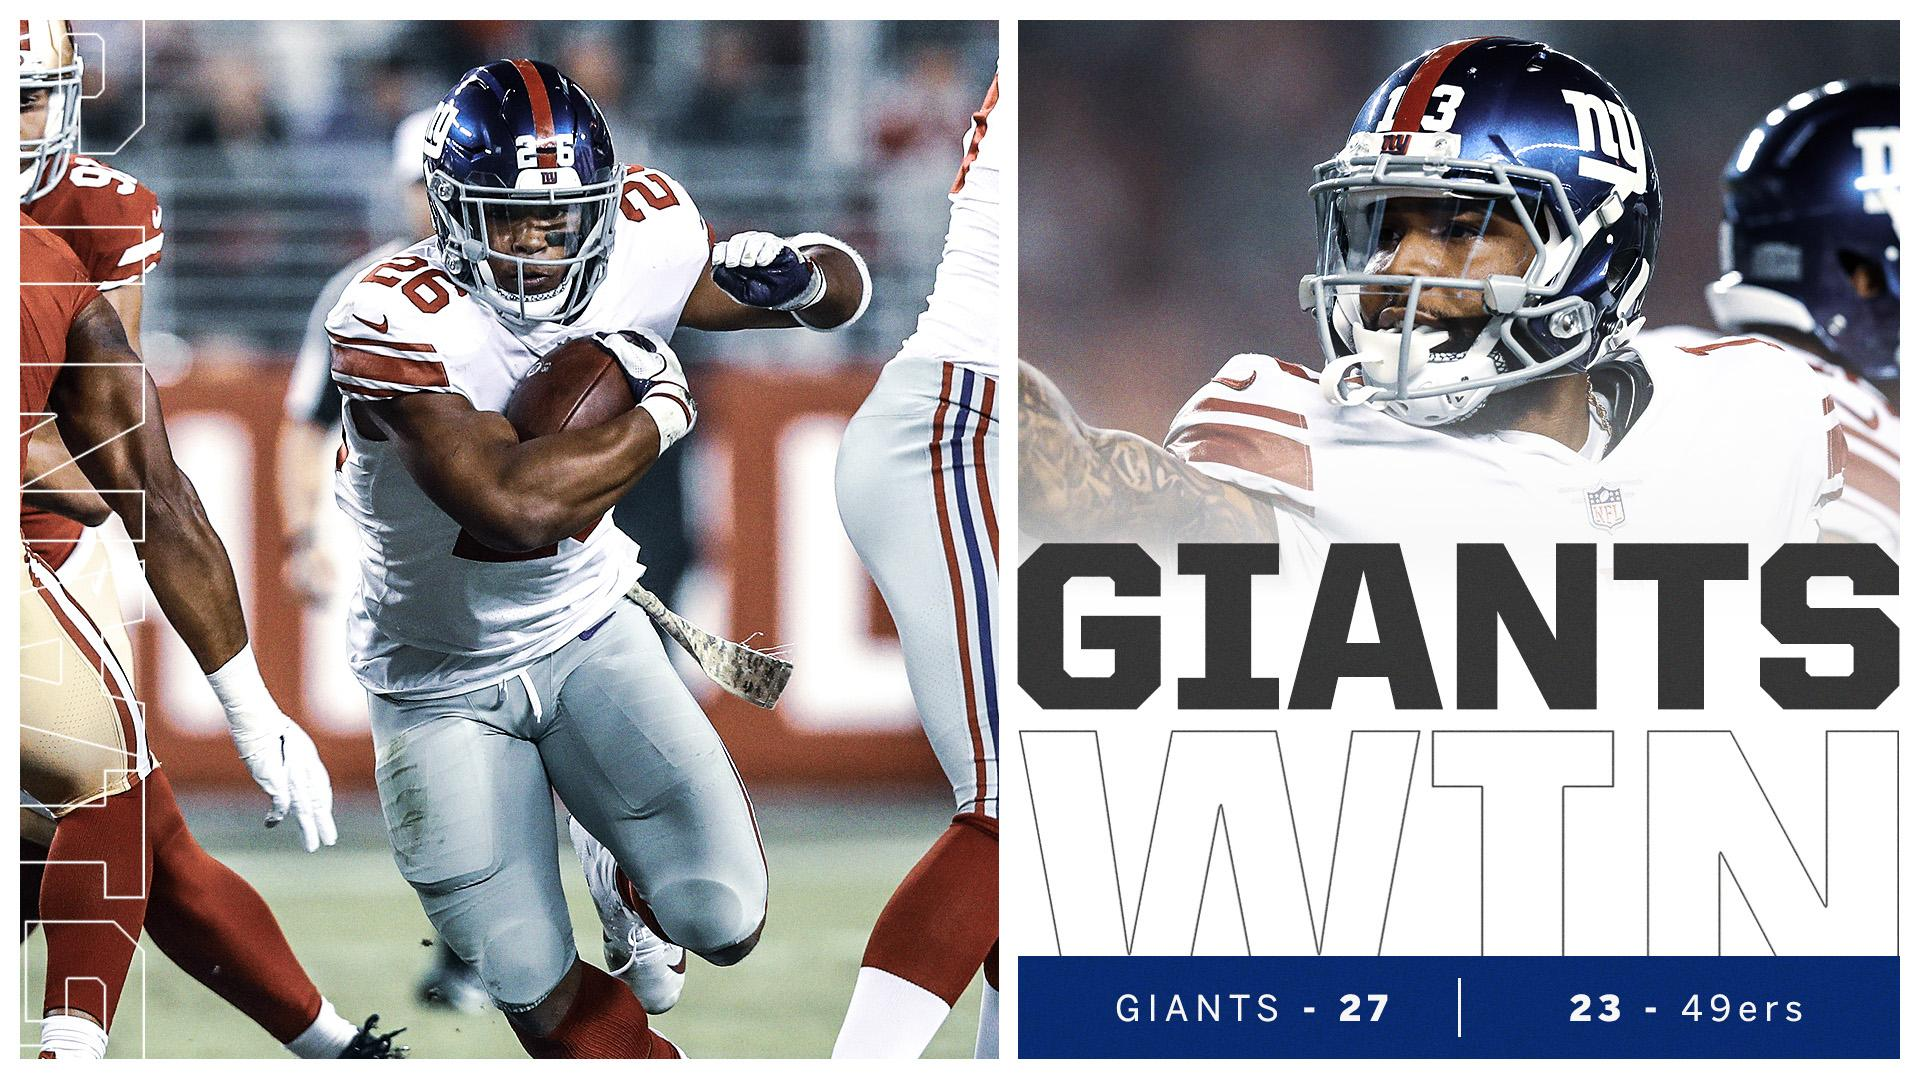 The New York Giants are back in the W column! https://t.co/Pj8gswhmpH